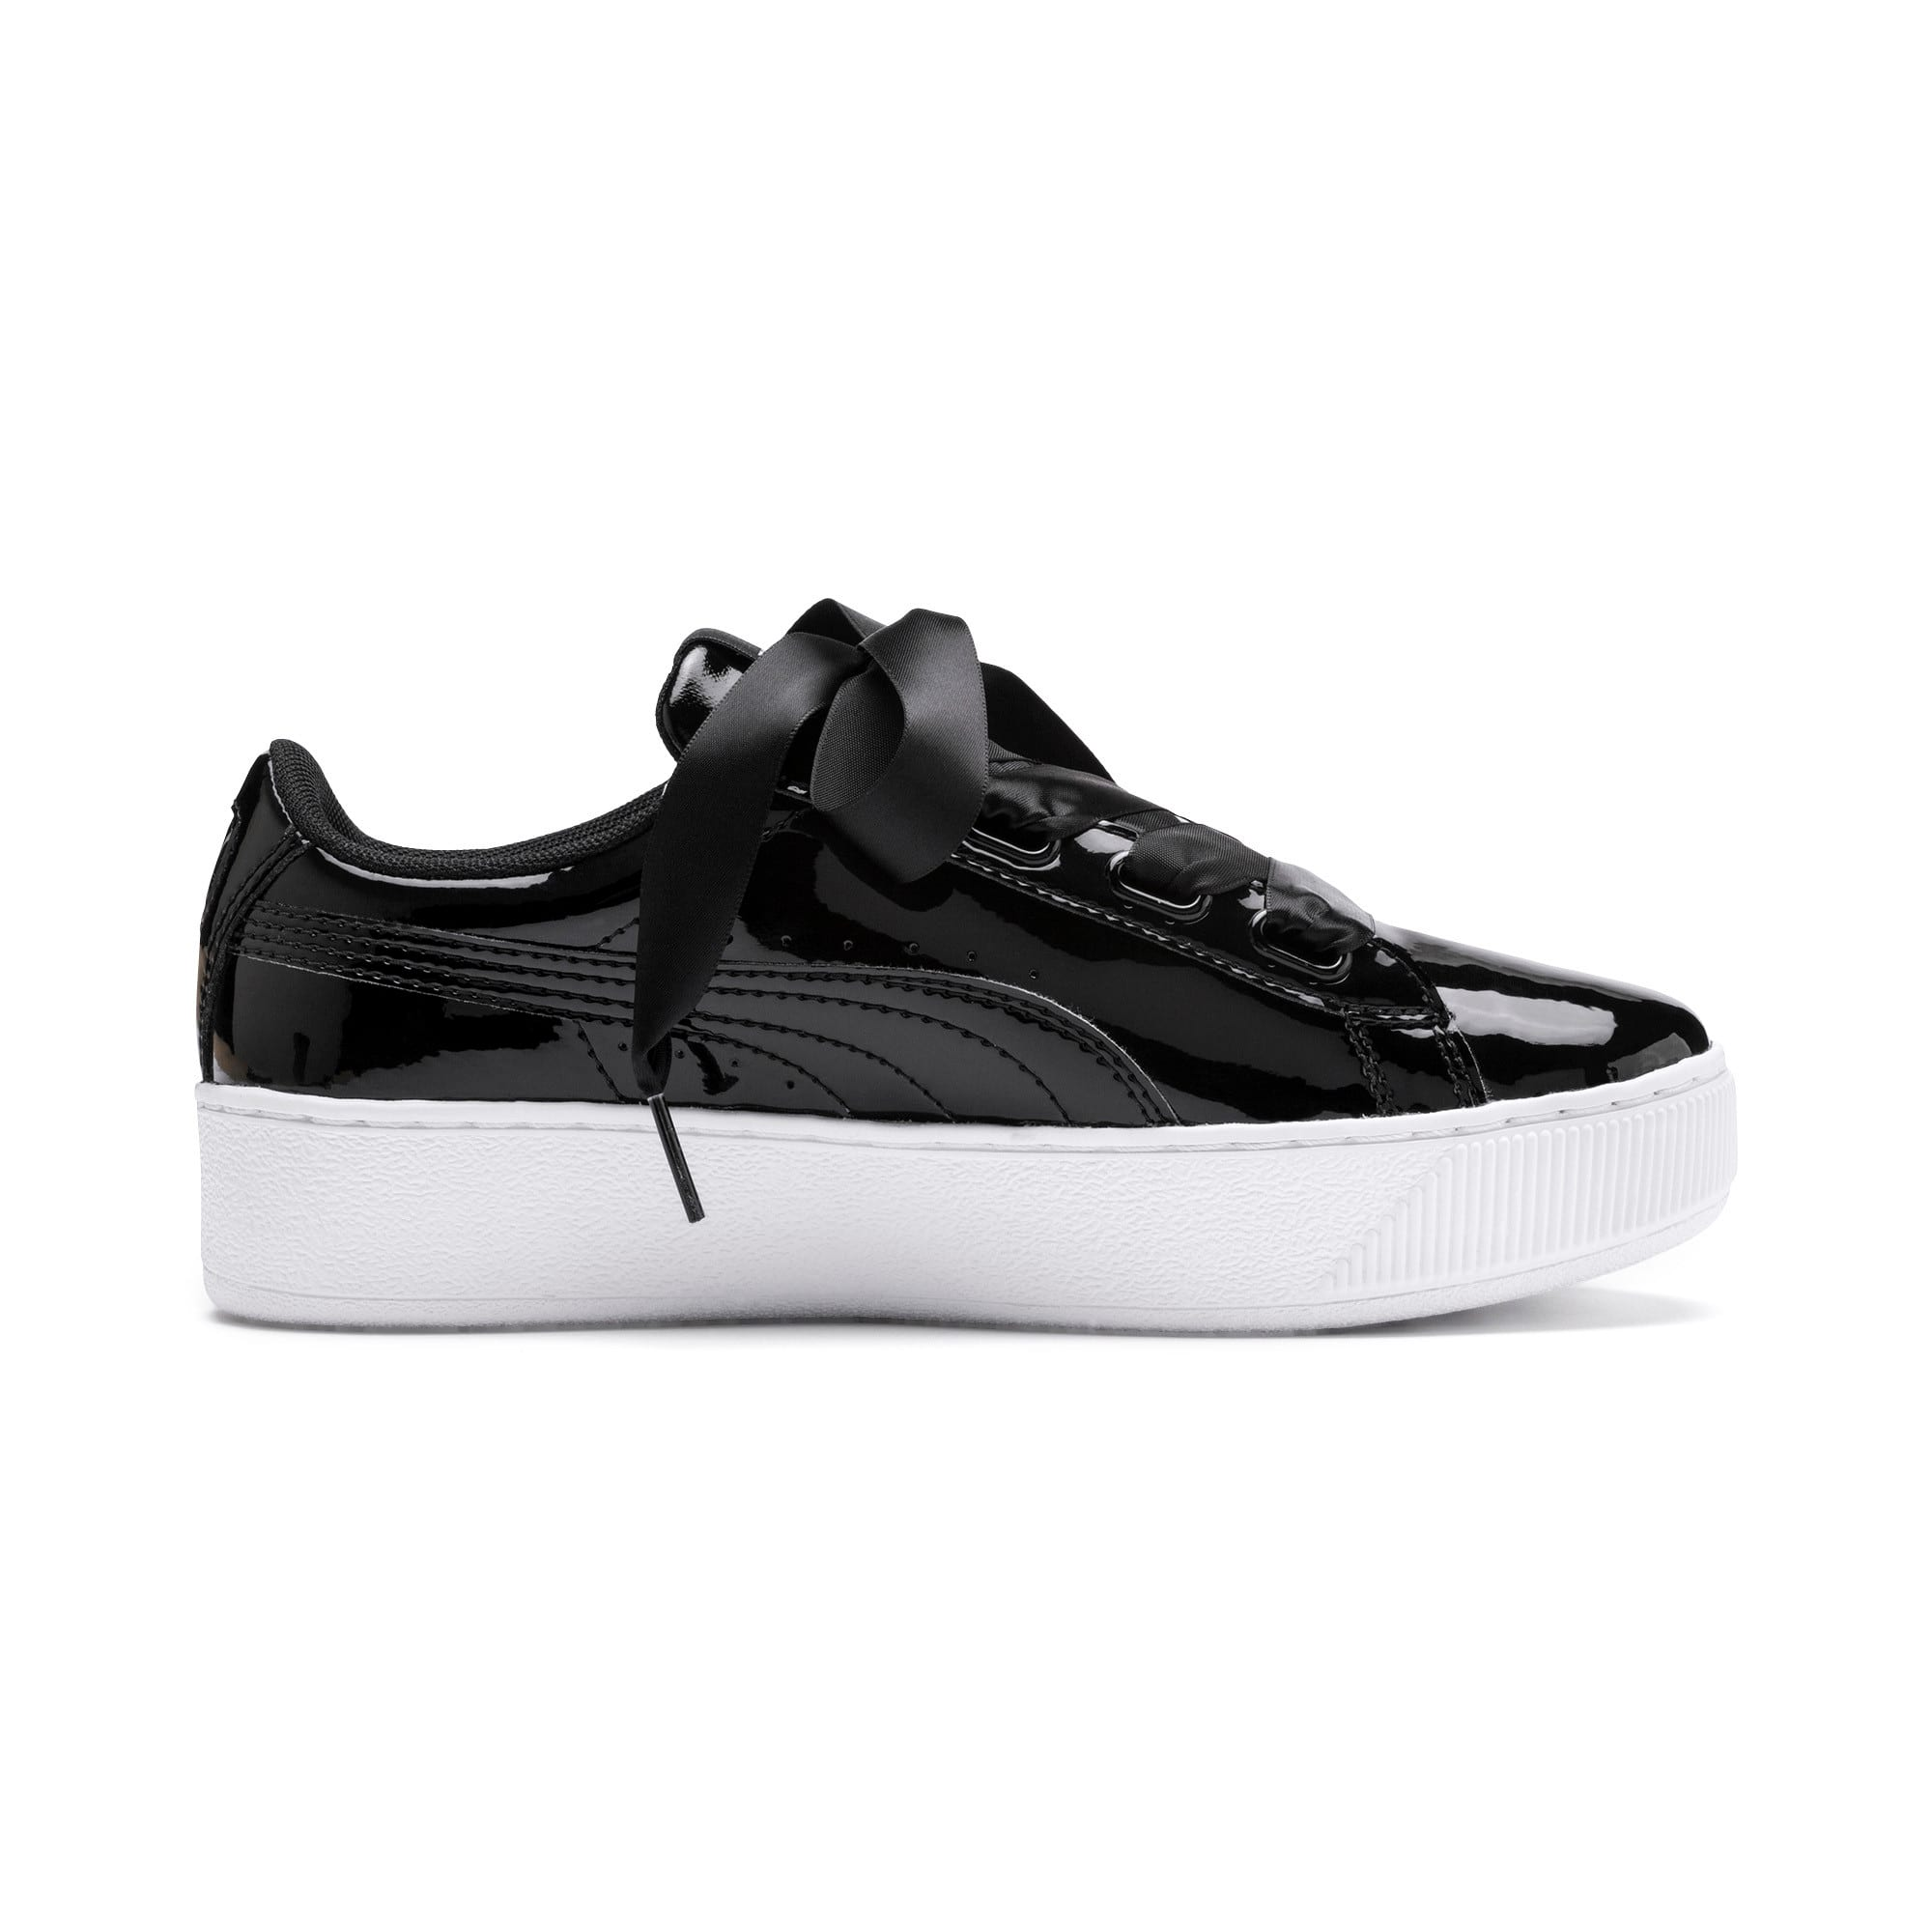 Thumbnail 5 of Vikky Platform Ribbon Patent Girls' Trainers, Puma Black-Puma Black, medium